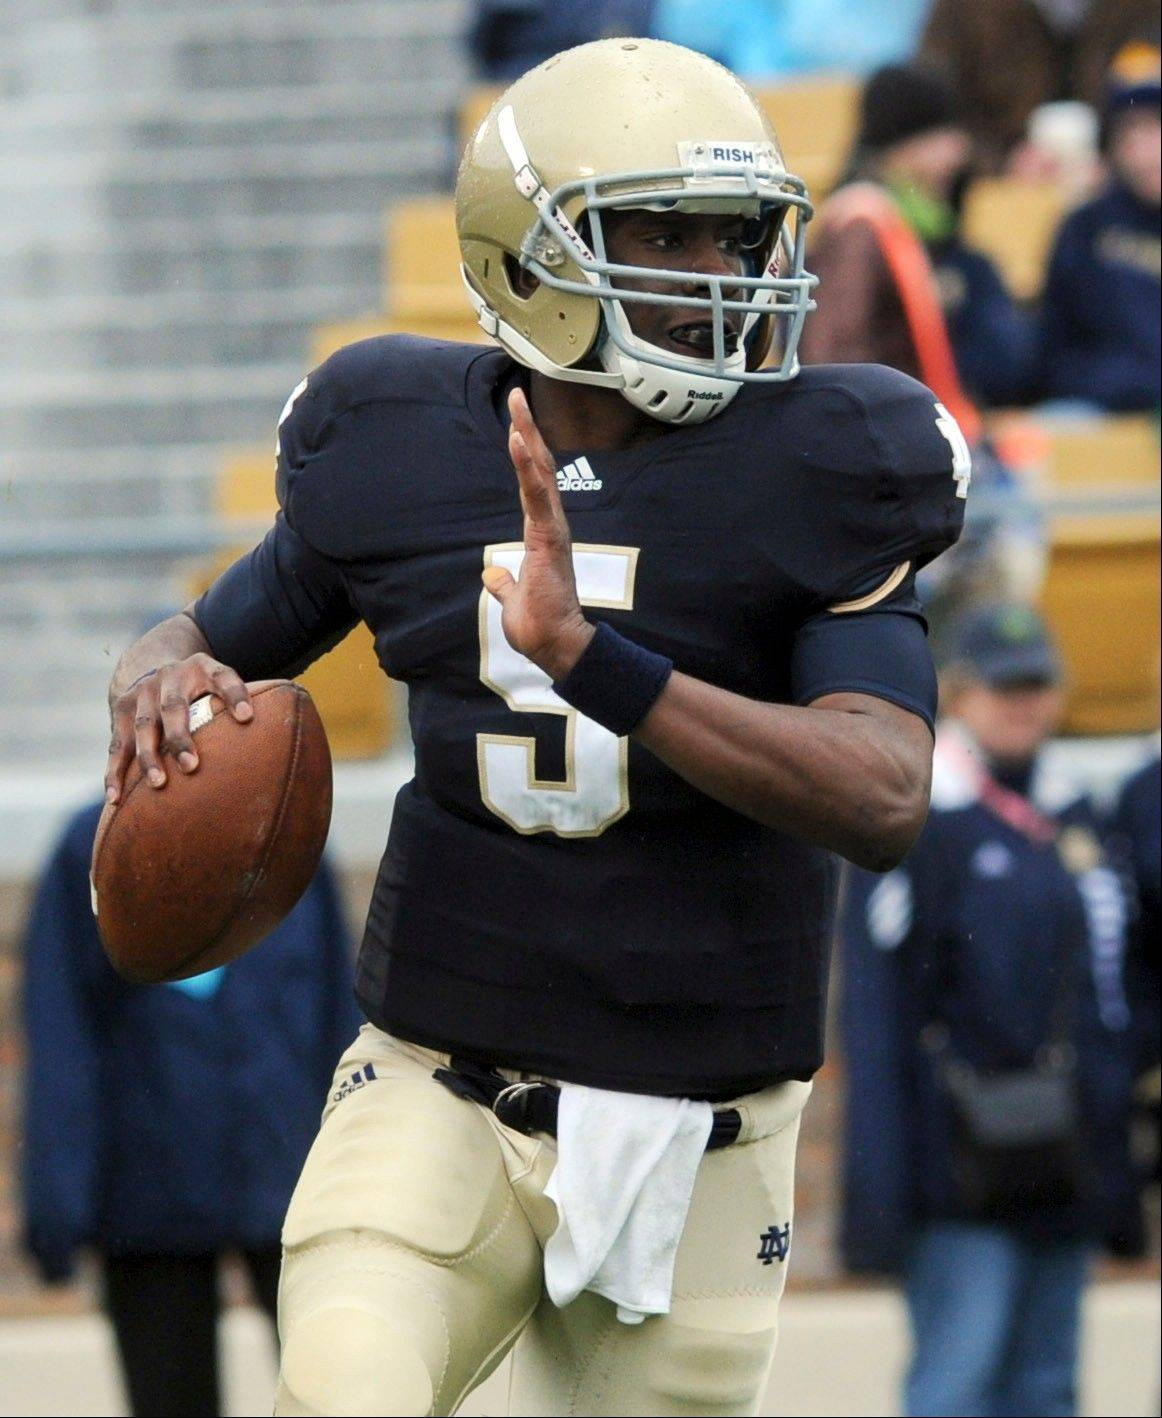 FILE - In this April 16, 2011, file photo, Notre Dame quarterback Everett Golson sprints out of the pocket during the first half of a spring NCAA college football game in South Bend, Ind. A Notre Dame spokesman says Golson is no longer enrolled at the school. (AP Photo/Joe Raymond, File)